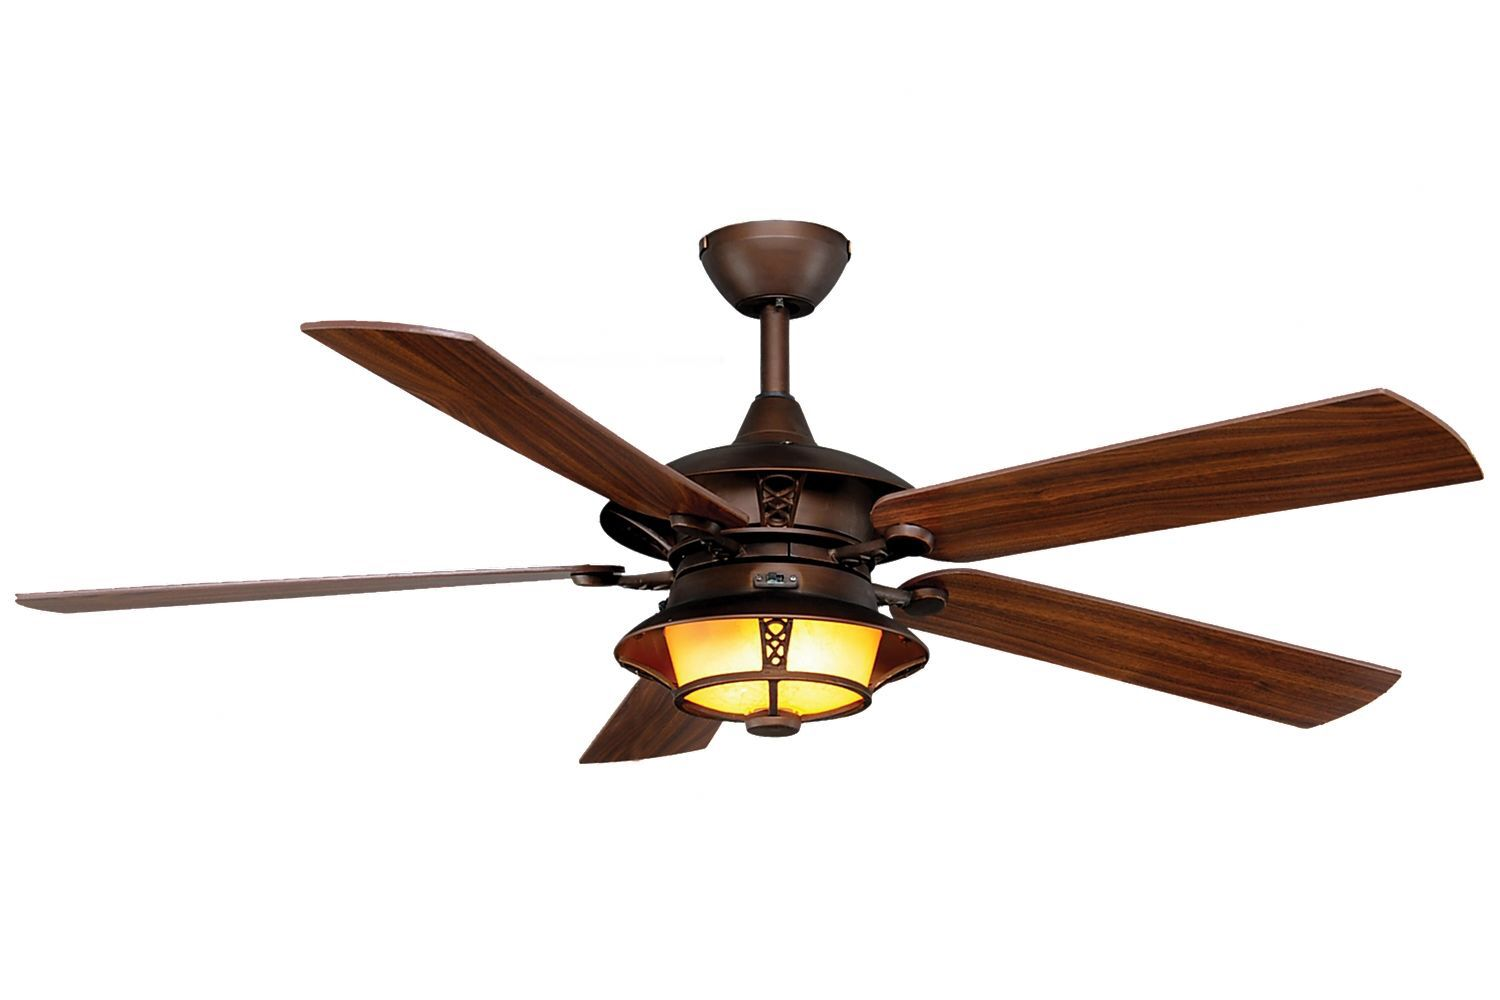 52 Tibuh Punched Metal Crystal 5 Blade Ceiling Fan With Remote